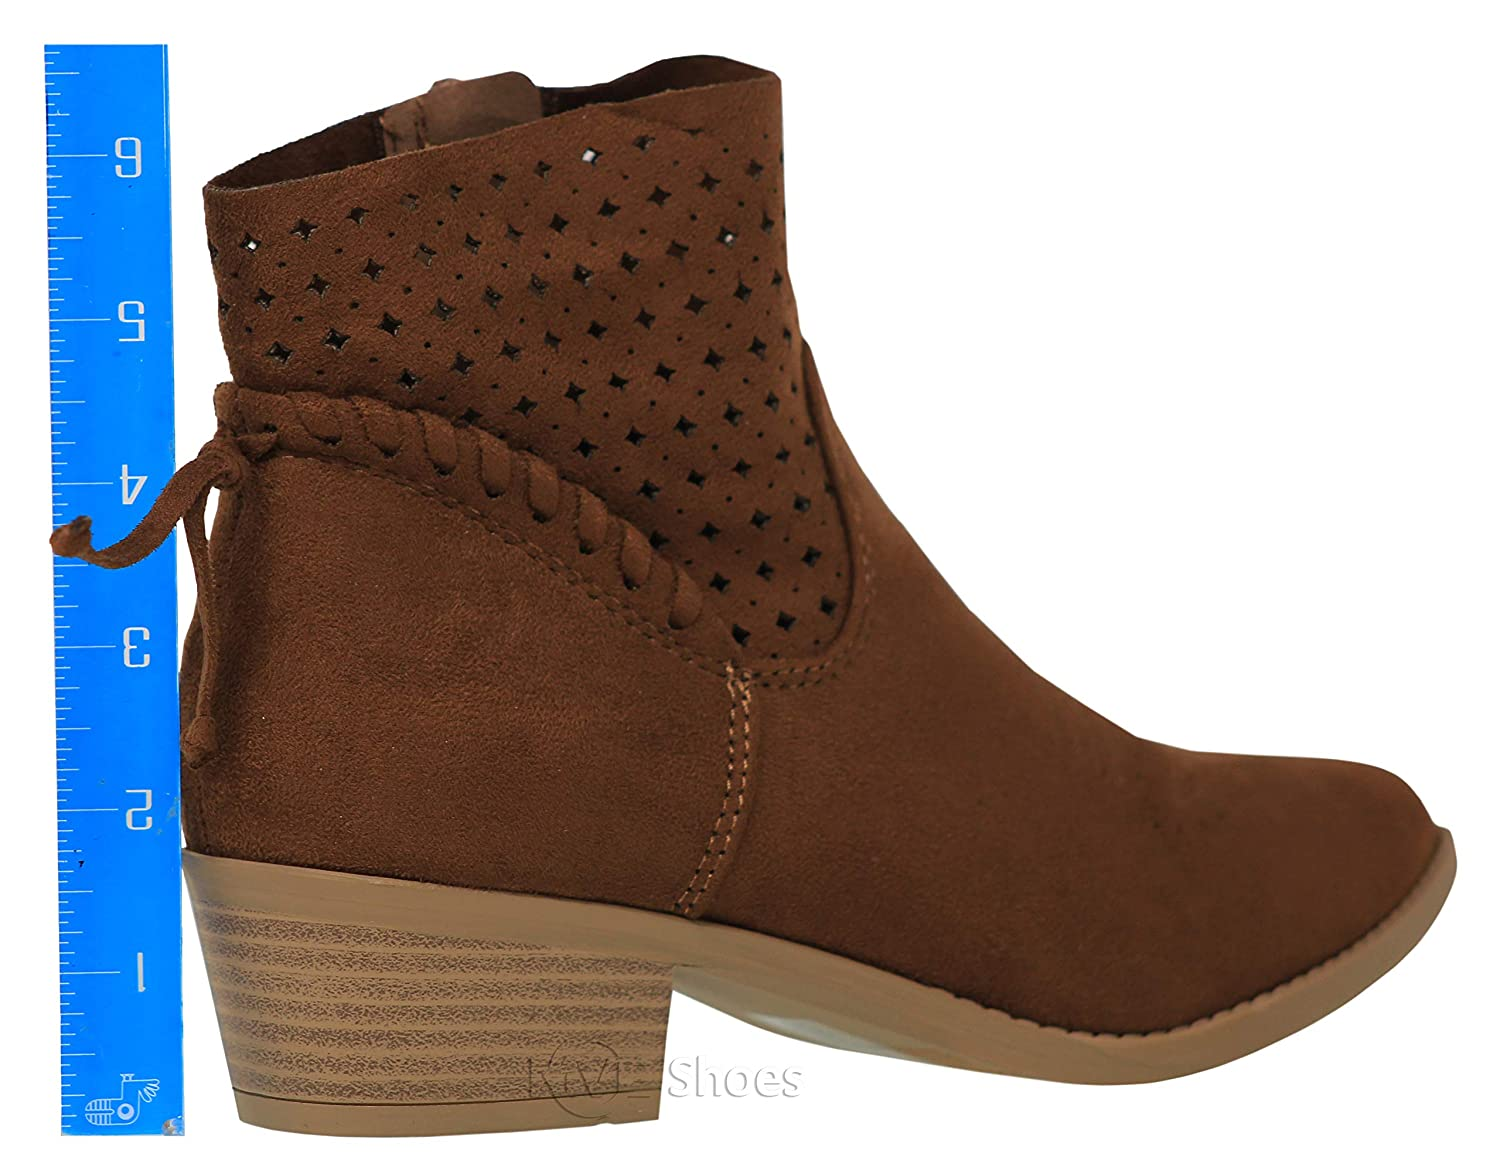 61ef4489d4181 Amazon.com | Classified Shoes Women's Low Stacked Heel Closed Toe Casual  Western Bootie Bus | Boots